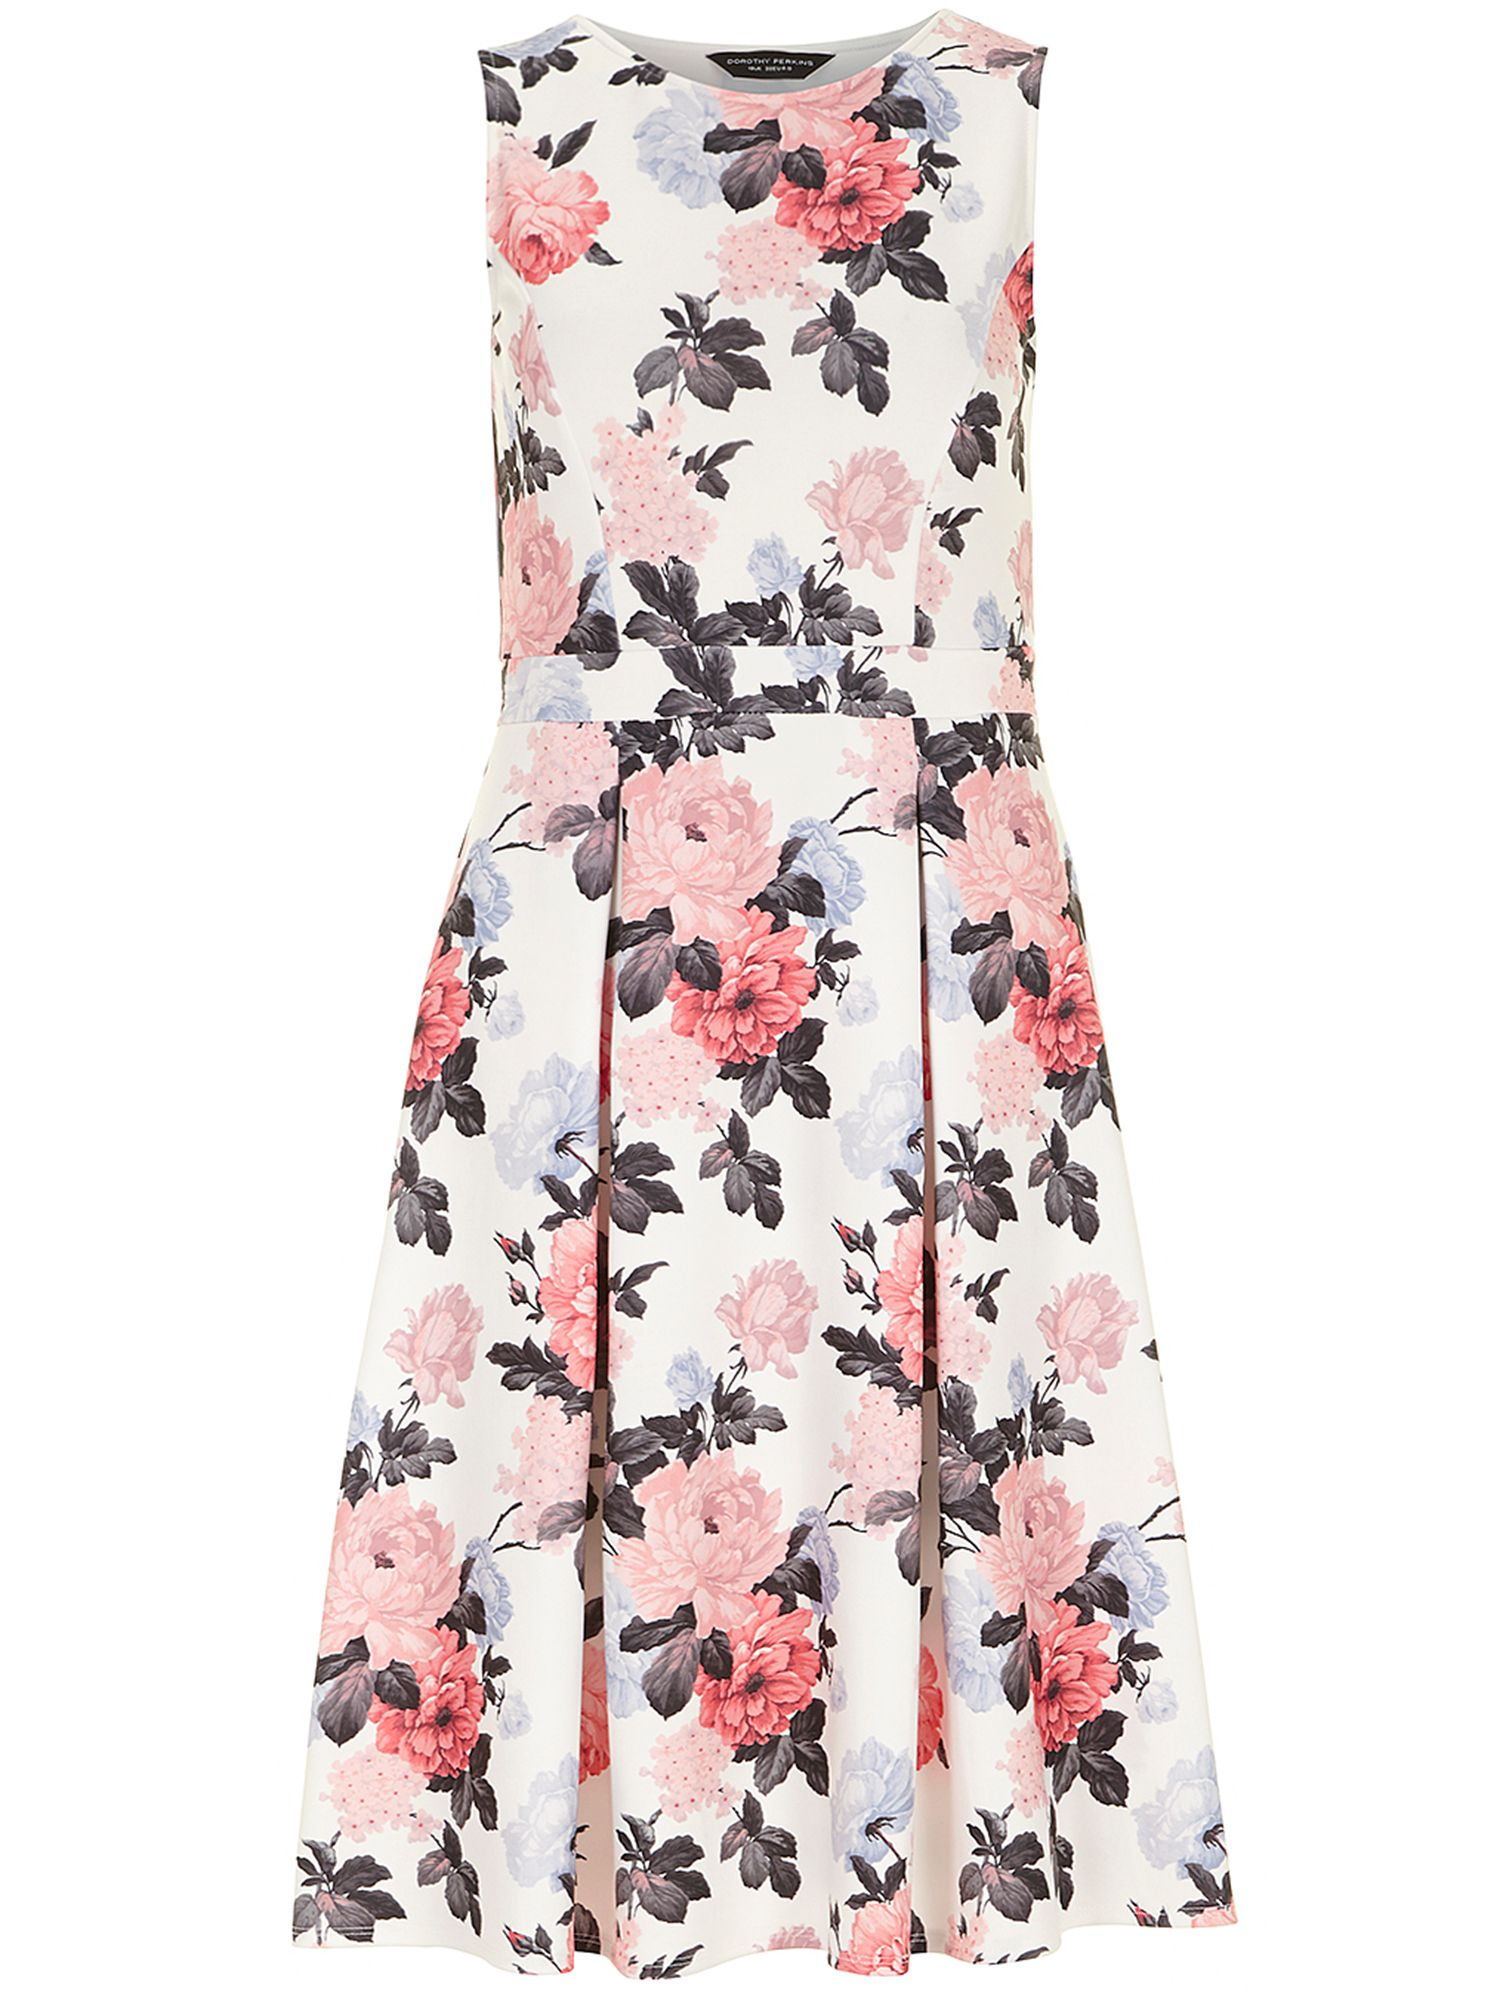 Floral neoprene dress